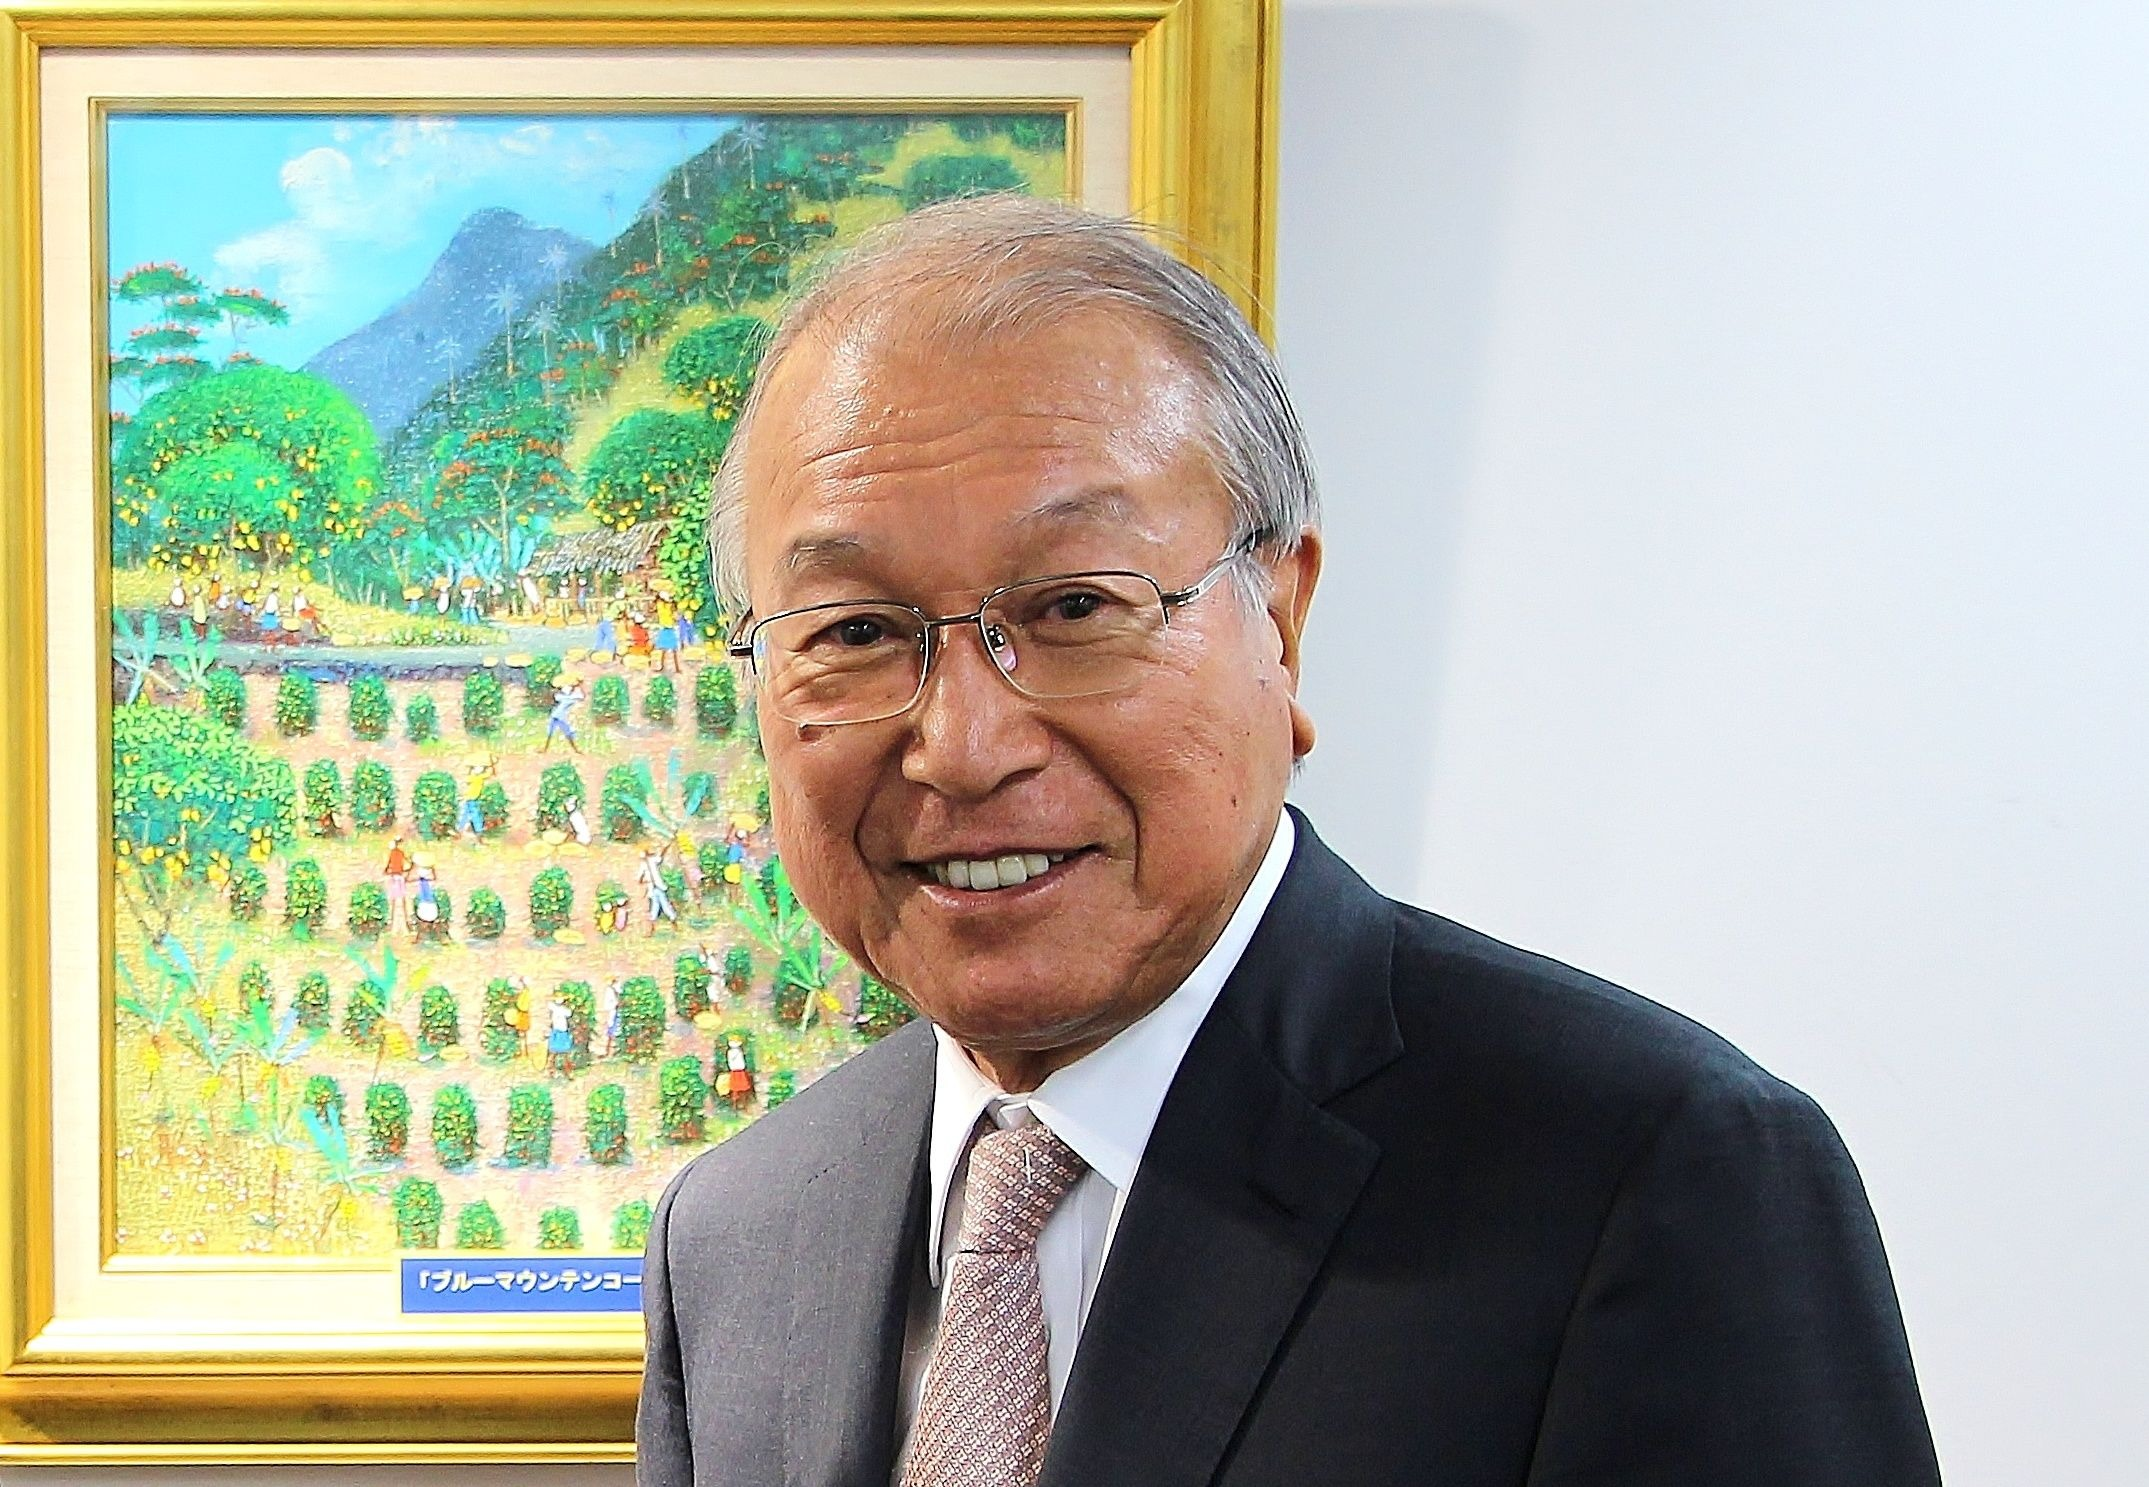 Interview: Mr. Tatsushi Ueshima, Representative Director-Chairman of UCC UESHIMA COFFEE CO., LTD. / Honorary Consul of the Honorary Consulate of Jamaica in Kobe